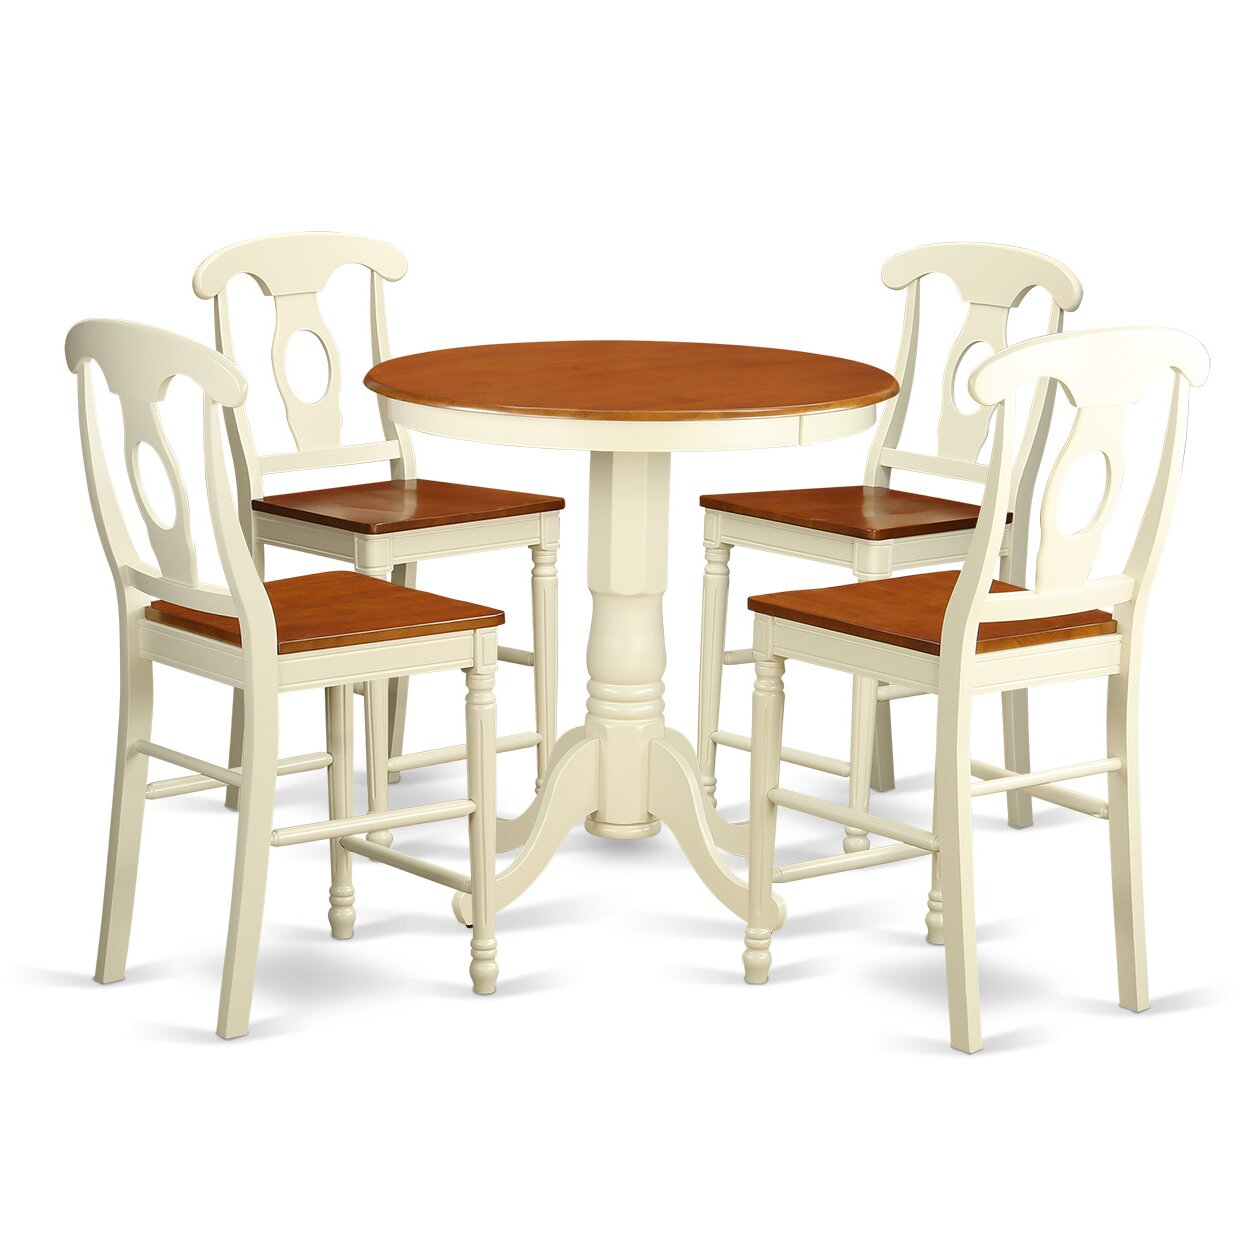 East west eden 5 piece counter height pub table set wayfair for Dining room table and 4 chairs